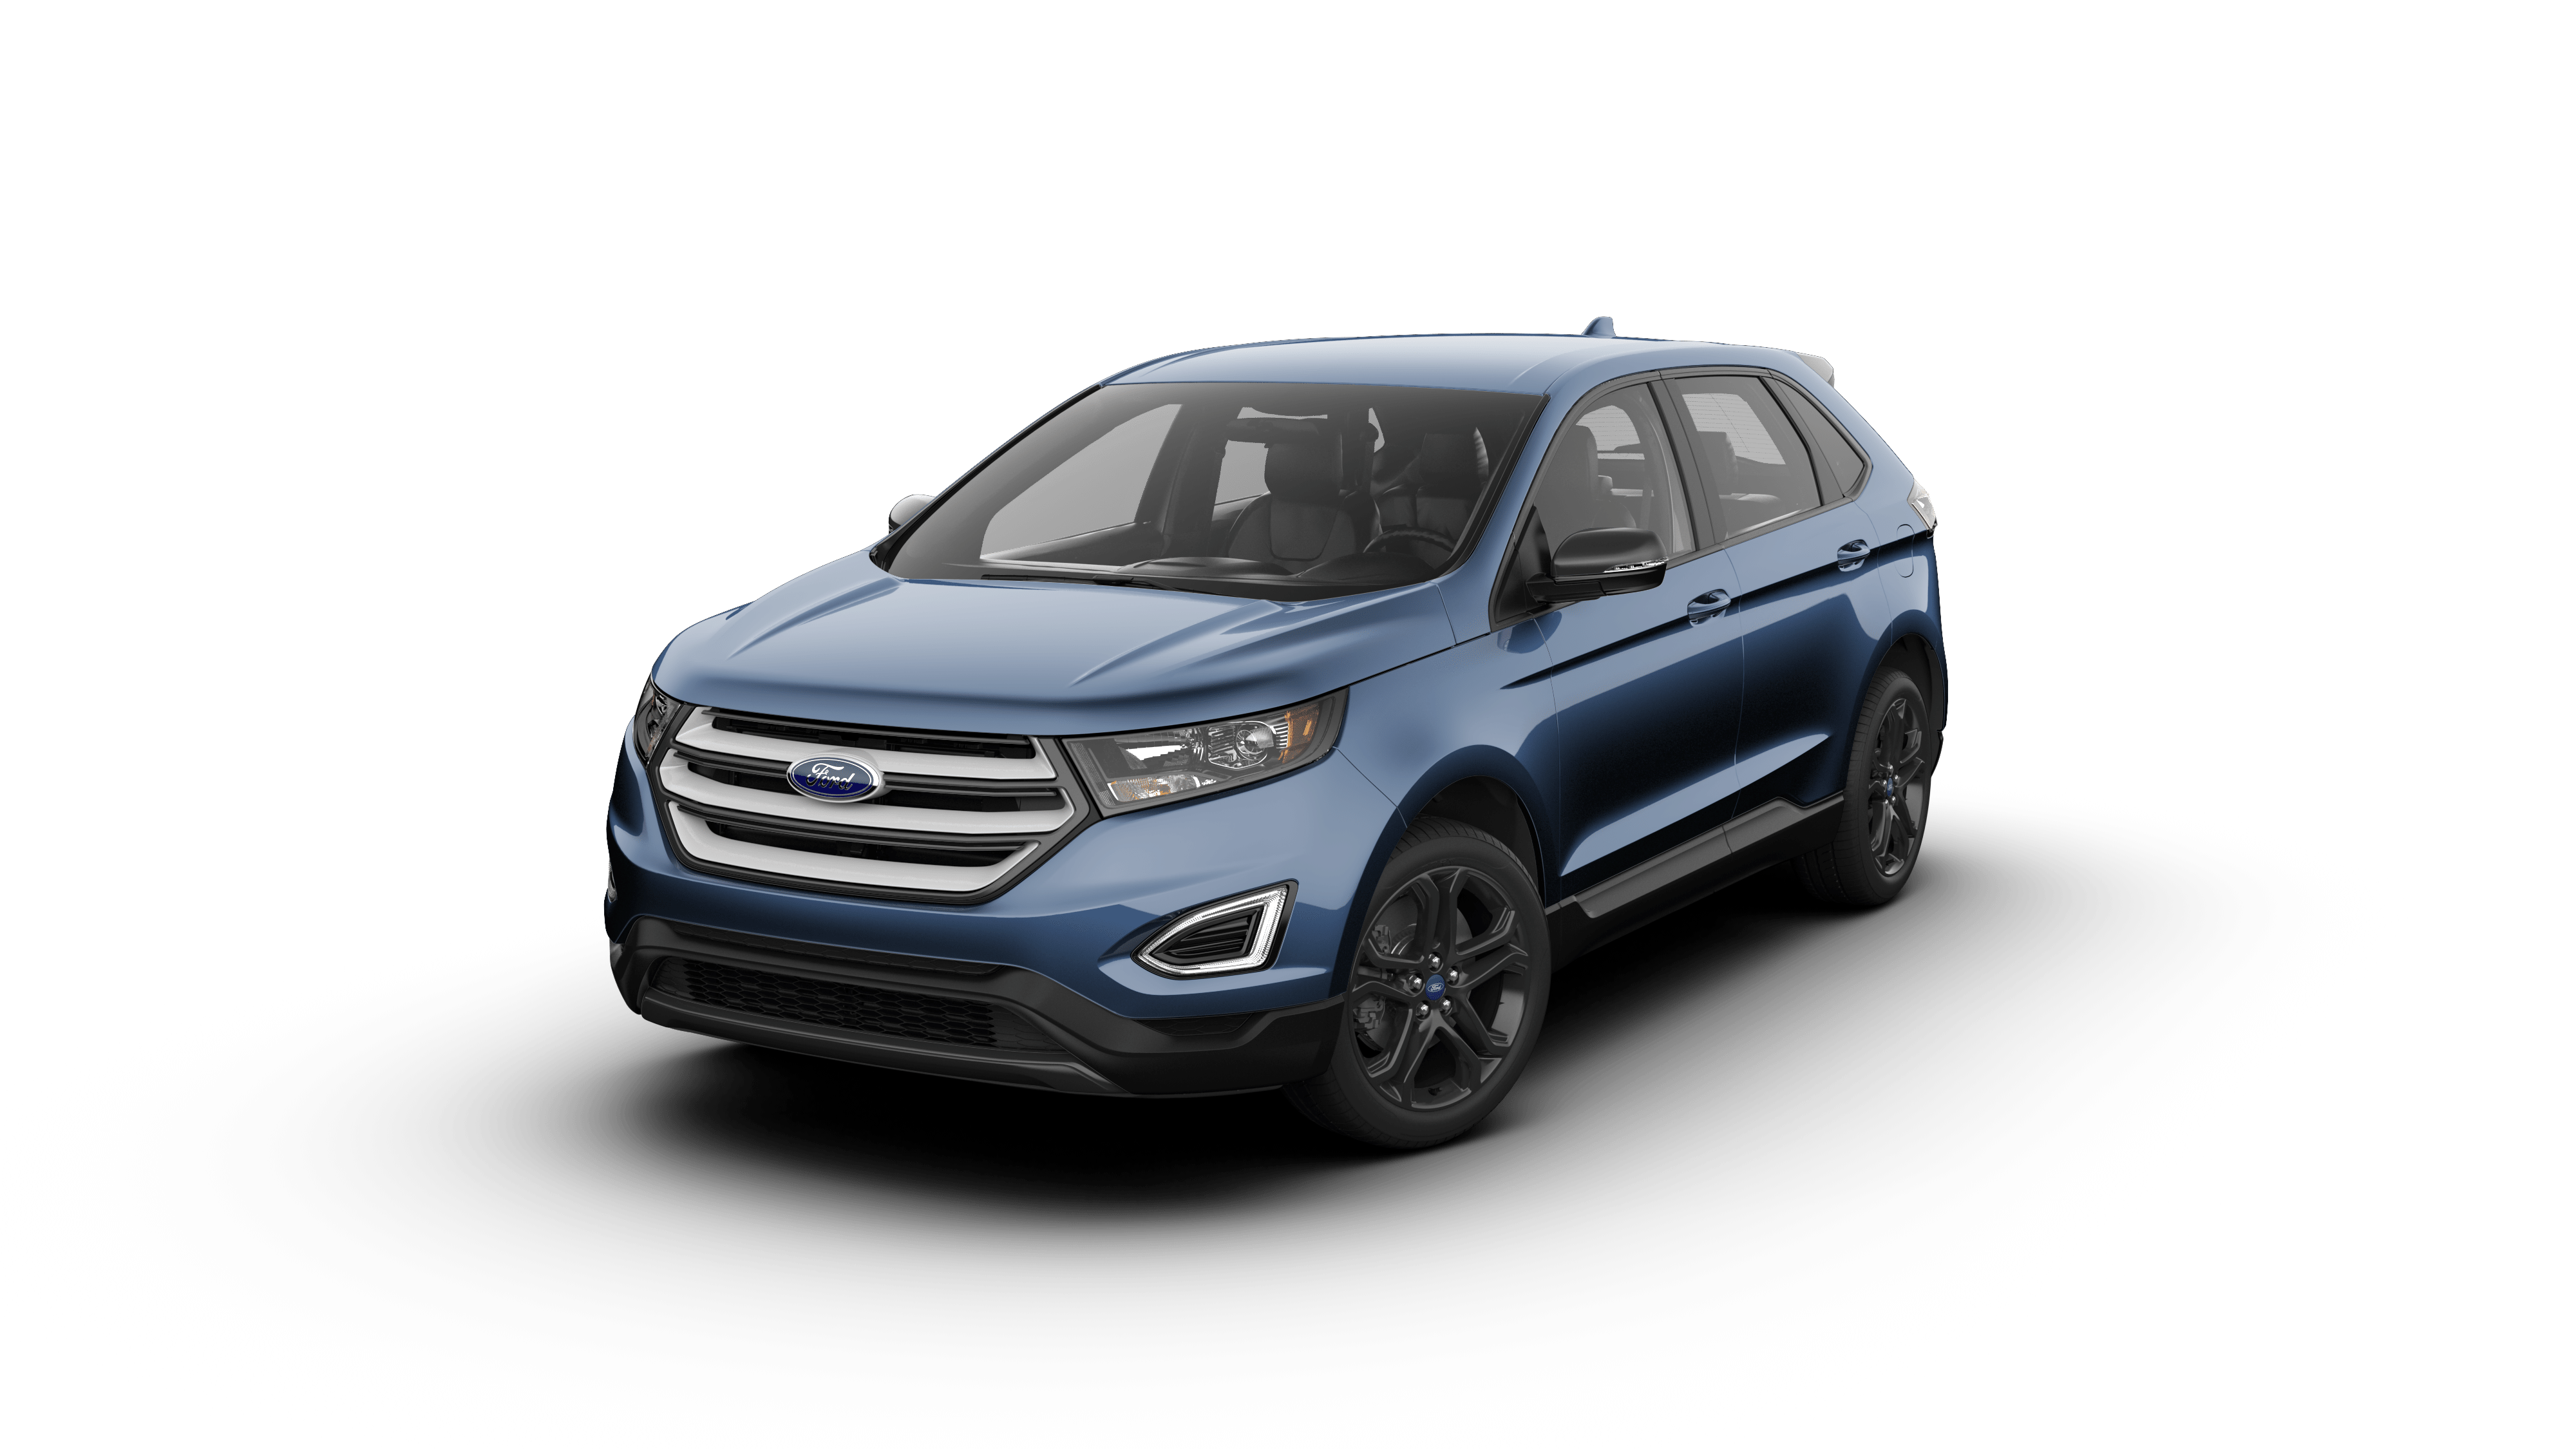 2018 Ford Edge Vehicle Photo in Souderton, PA 18964-1038